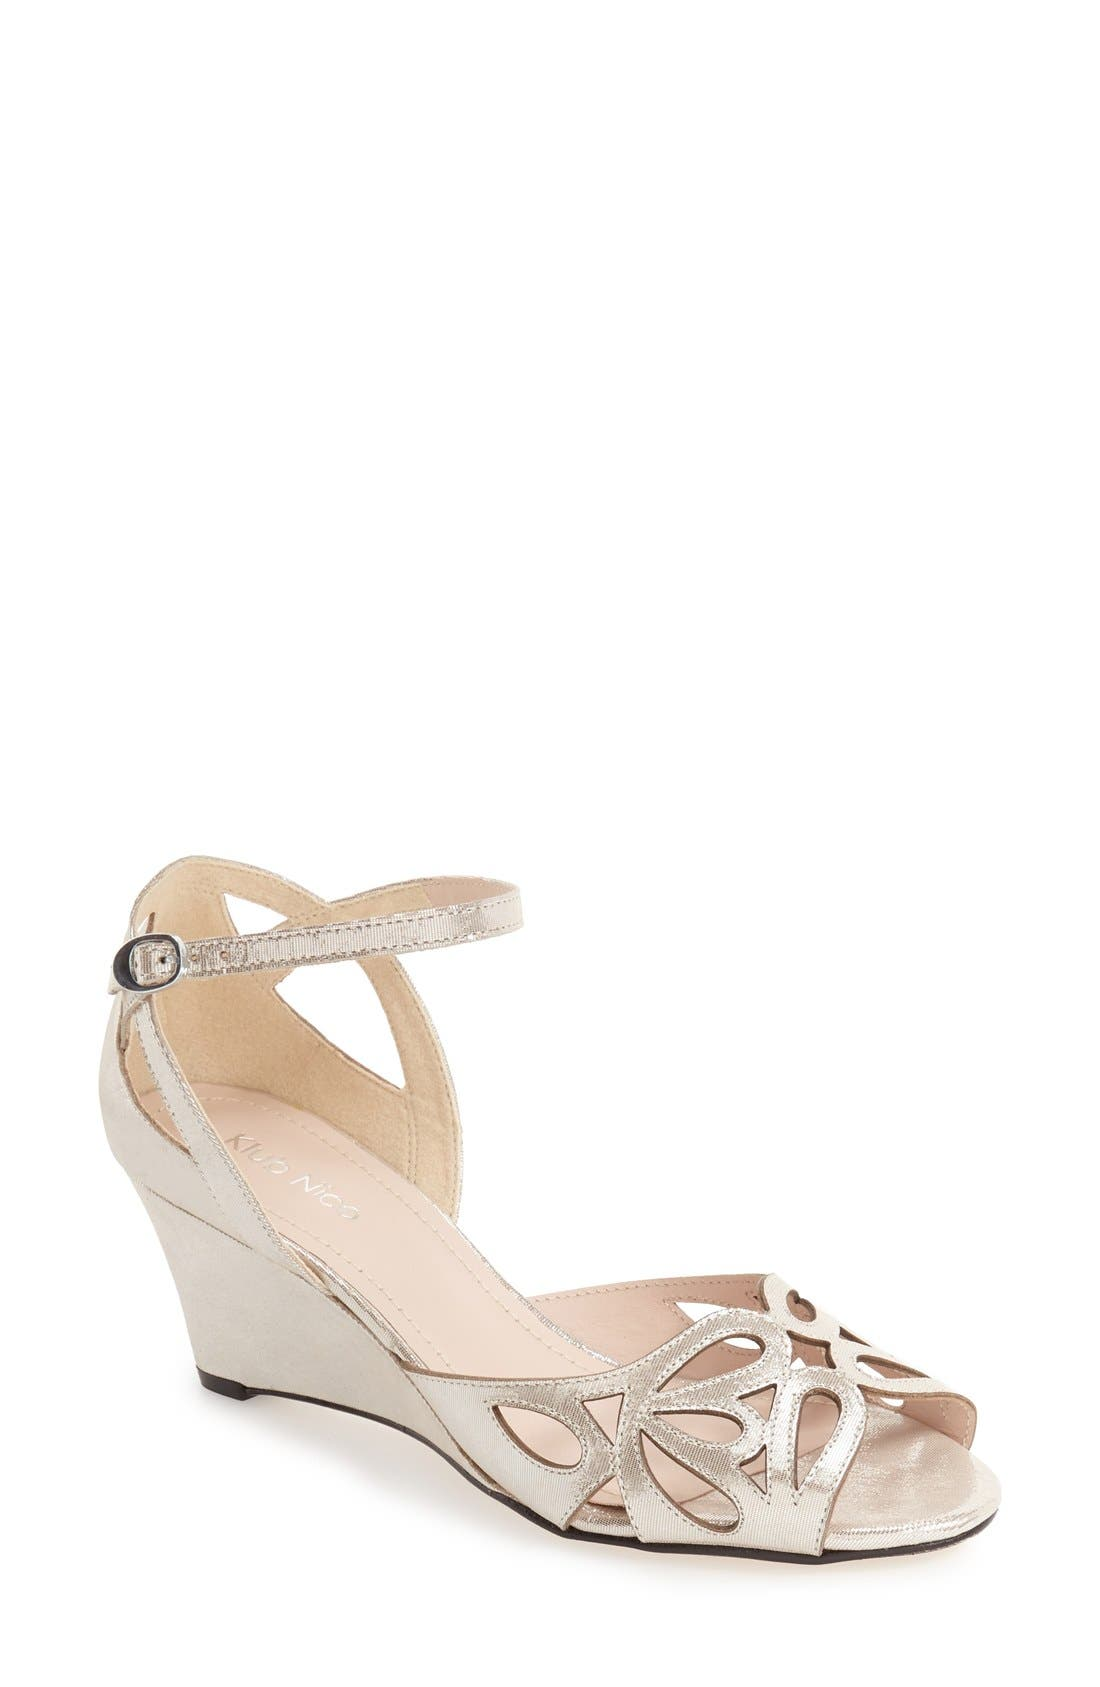 Main Image - Klub Nico 'Kismet' Wedge Sandal (Women)